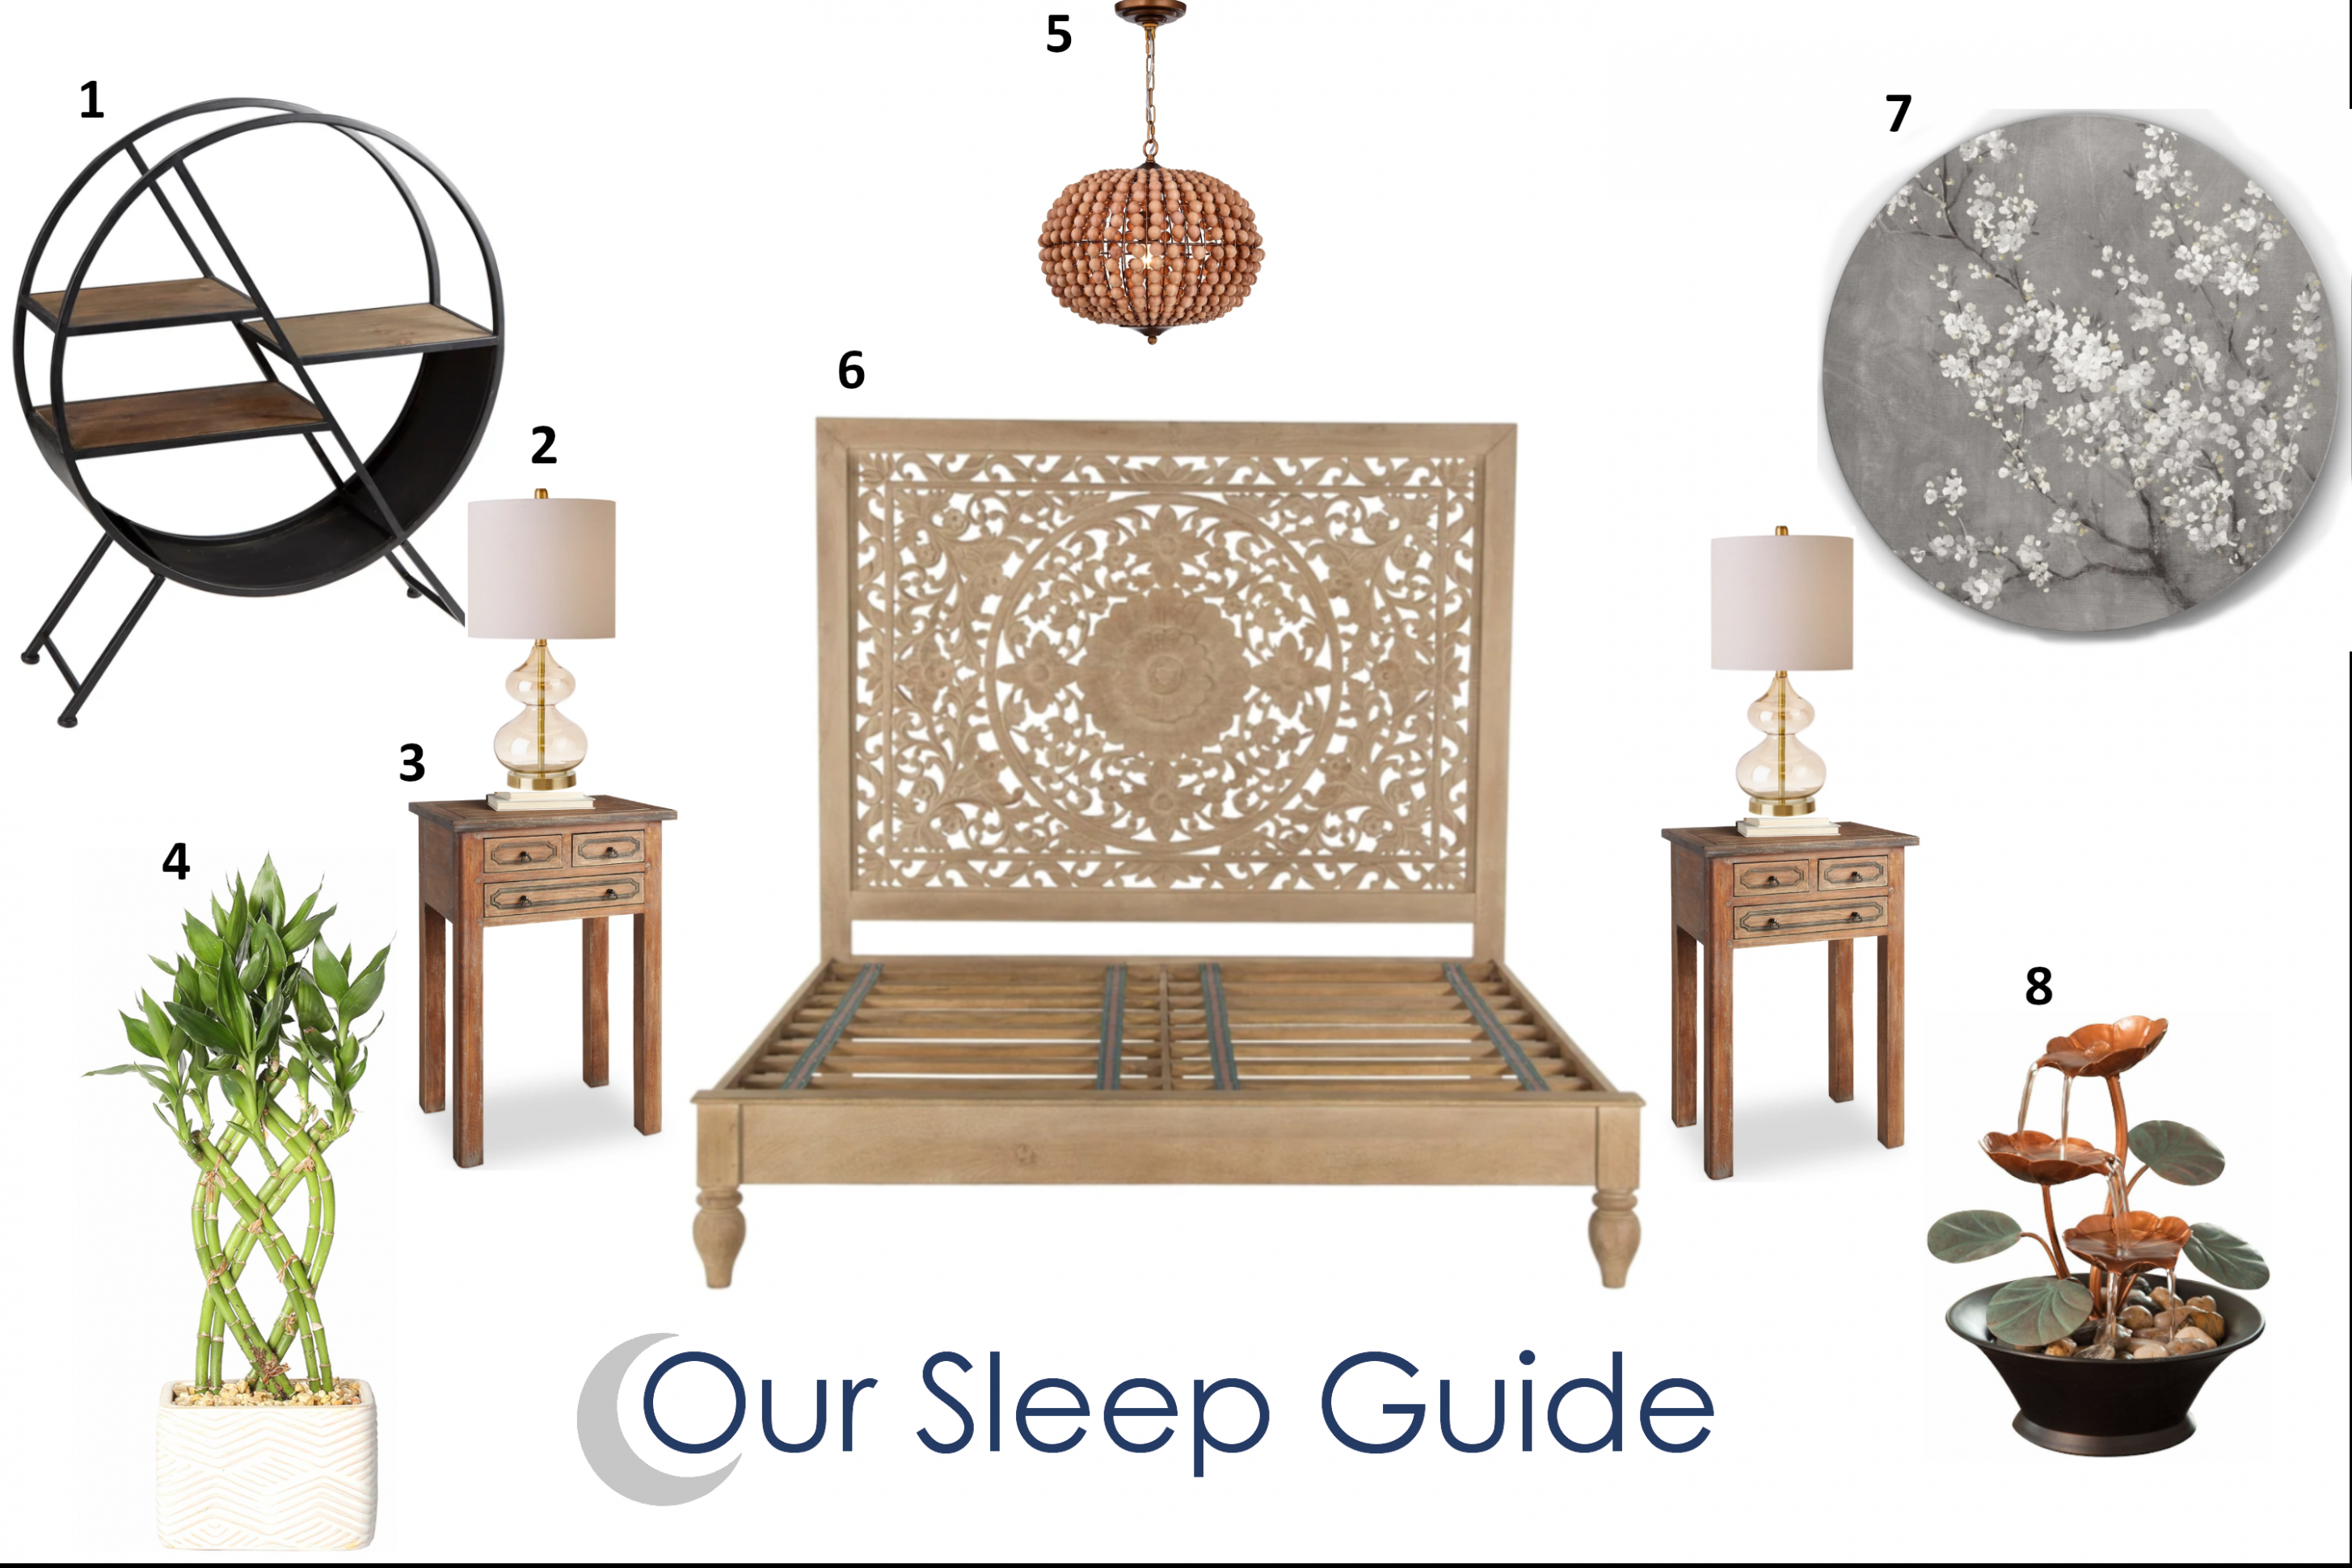 Zen Bedroom On A Budget: Create Harmony, Tranquility & Peace - zen bedroom ideas on a budget